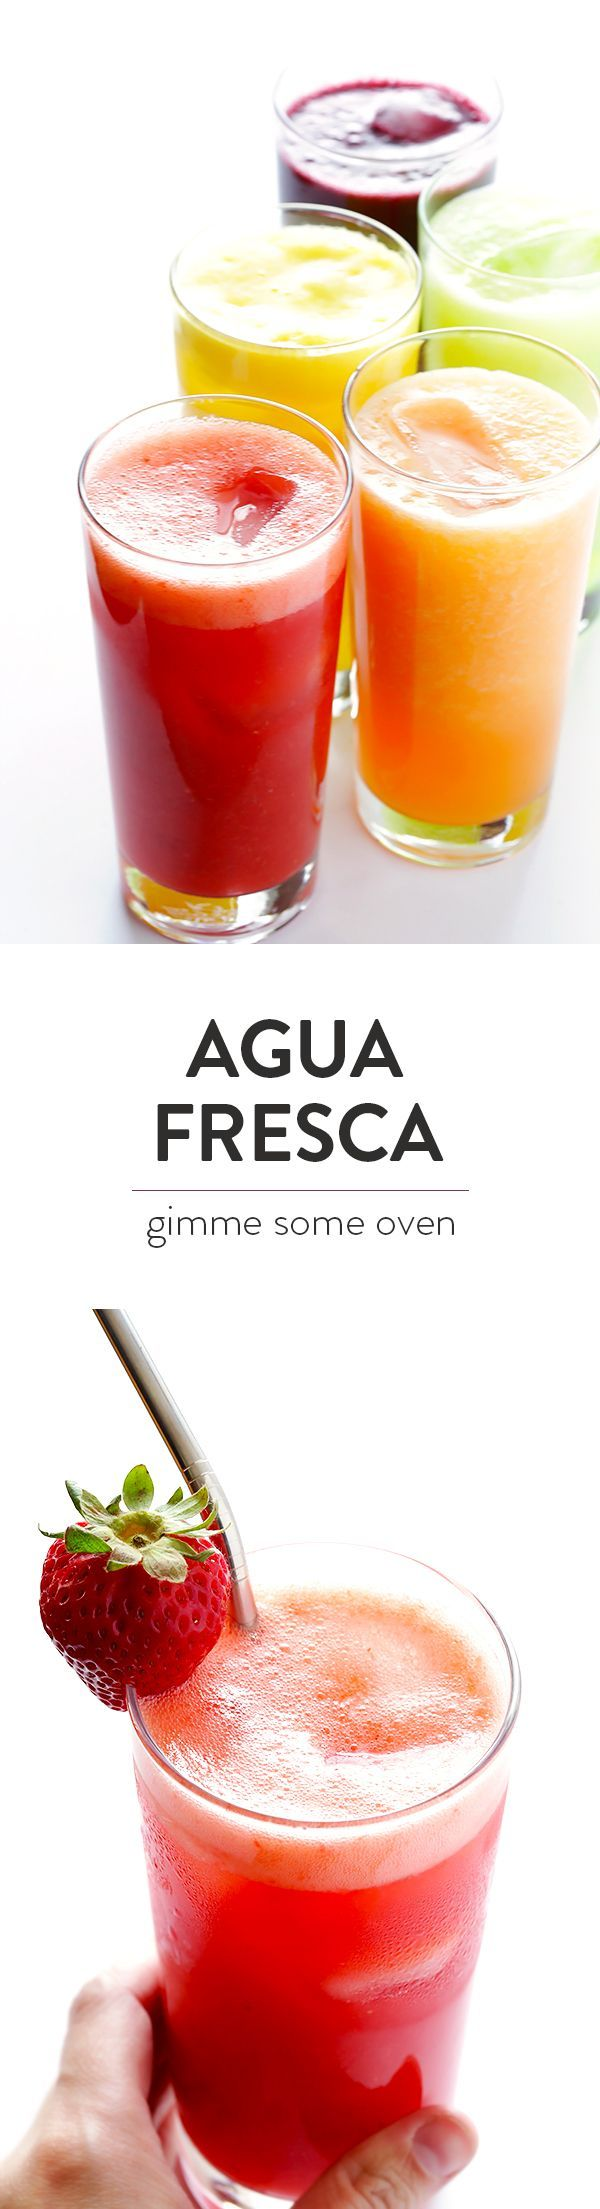 Naturally Sweetened Agua Fresca -- all you need is some fresh fruit, lime juice, water and a hint of sweetener to make these delicious and refreshing drinks! And bonus, they're ready to go in just a minute or two.   http://gimmesomeoven.com